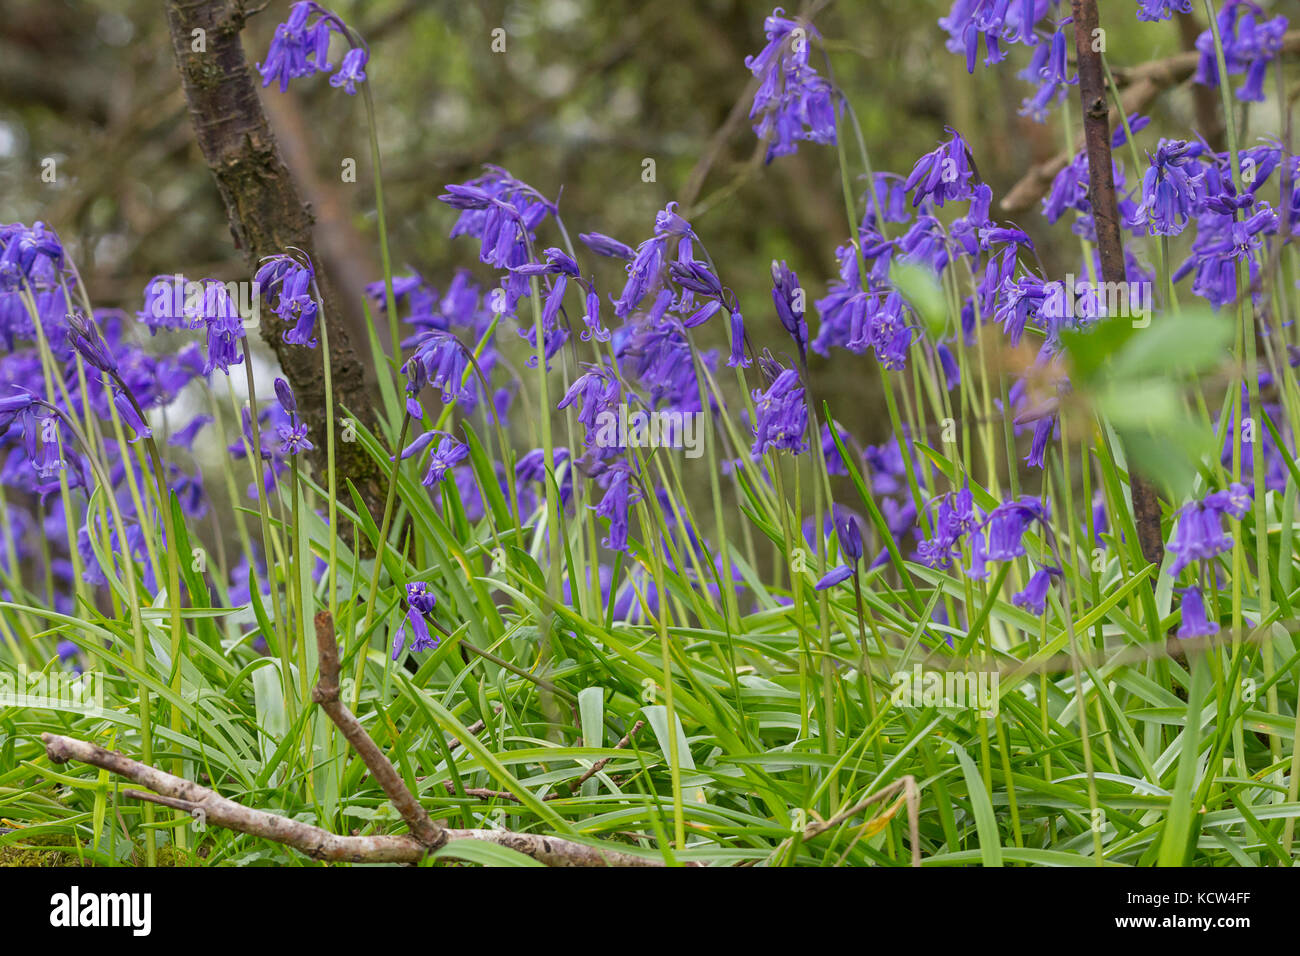 Blue bells in woodland Rudgwick UK carpet of colour on woodland floors. Bulbous perennial  narrow green basal leaves - Stock Image